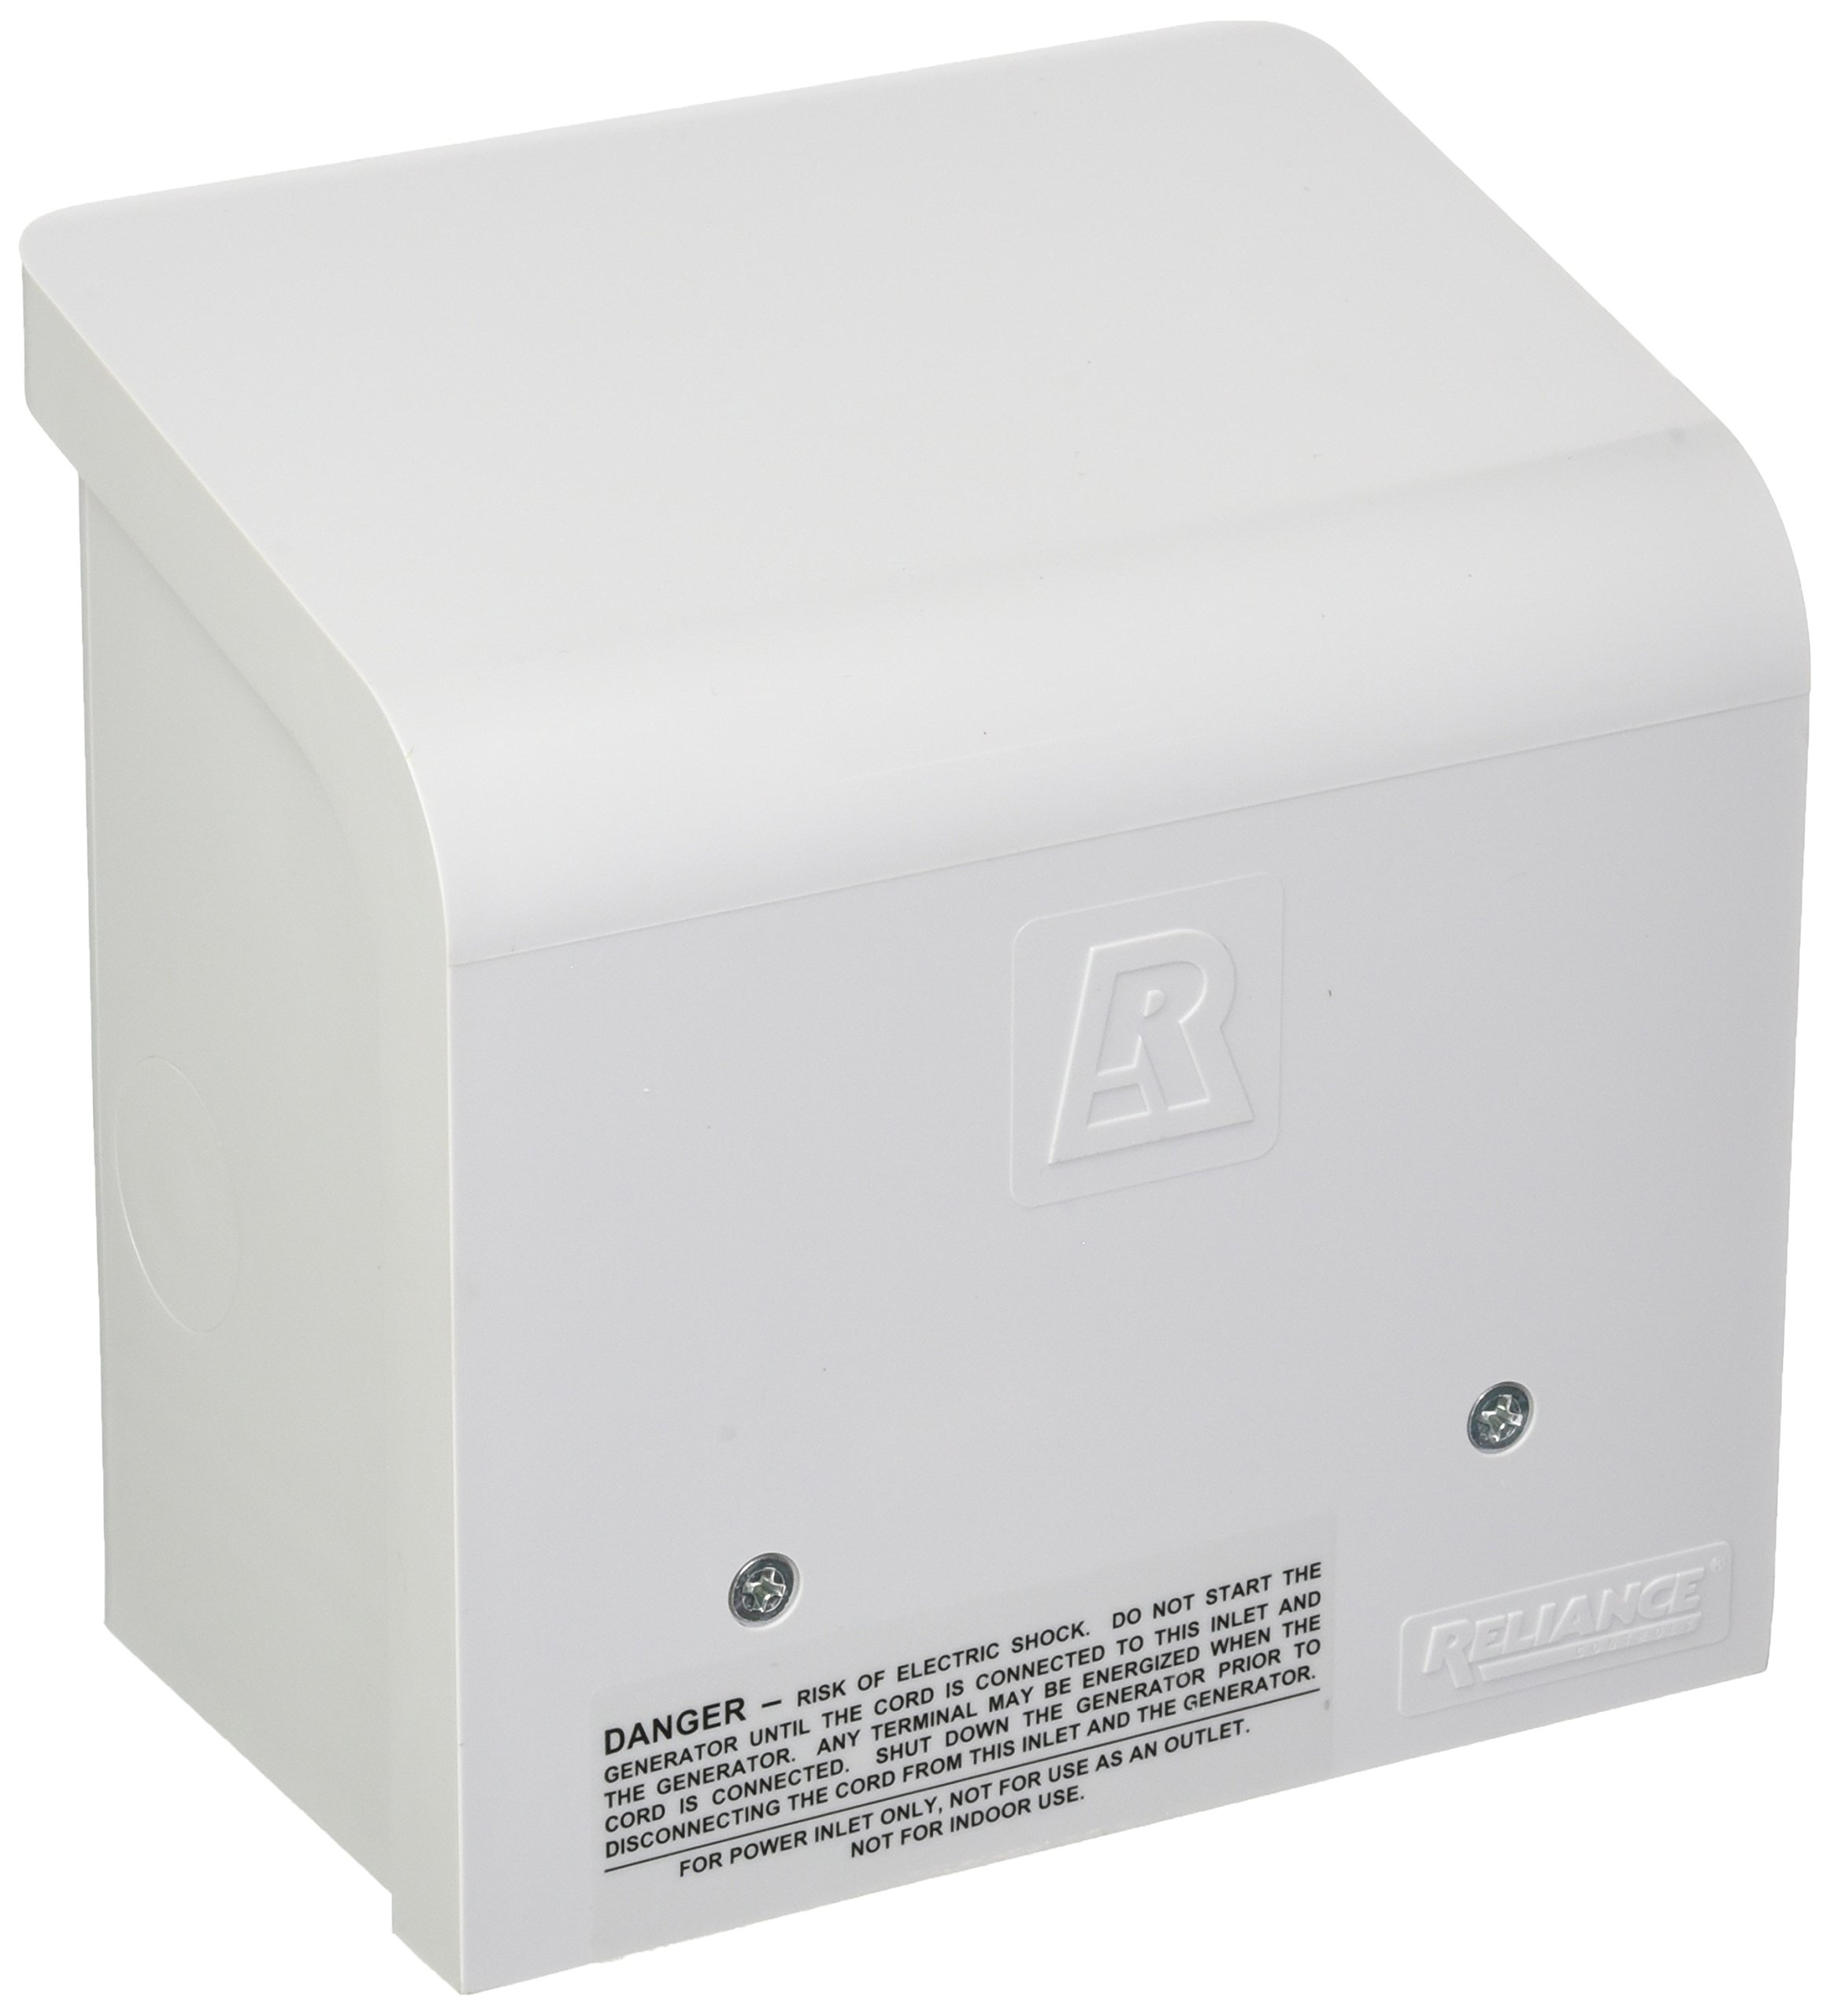 Reliance Controls Non-Metallic Power Inlet Box, Amps 30 by Reliance Controls